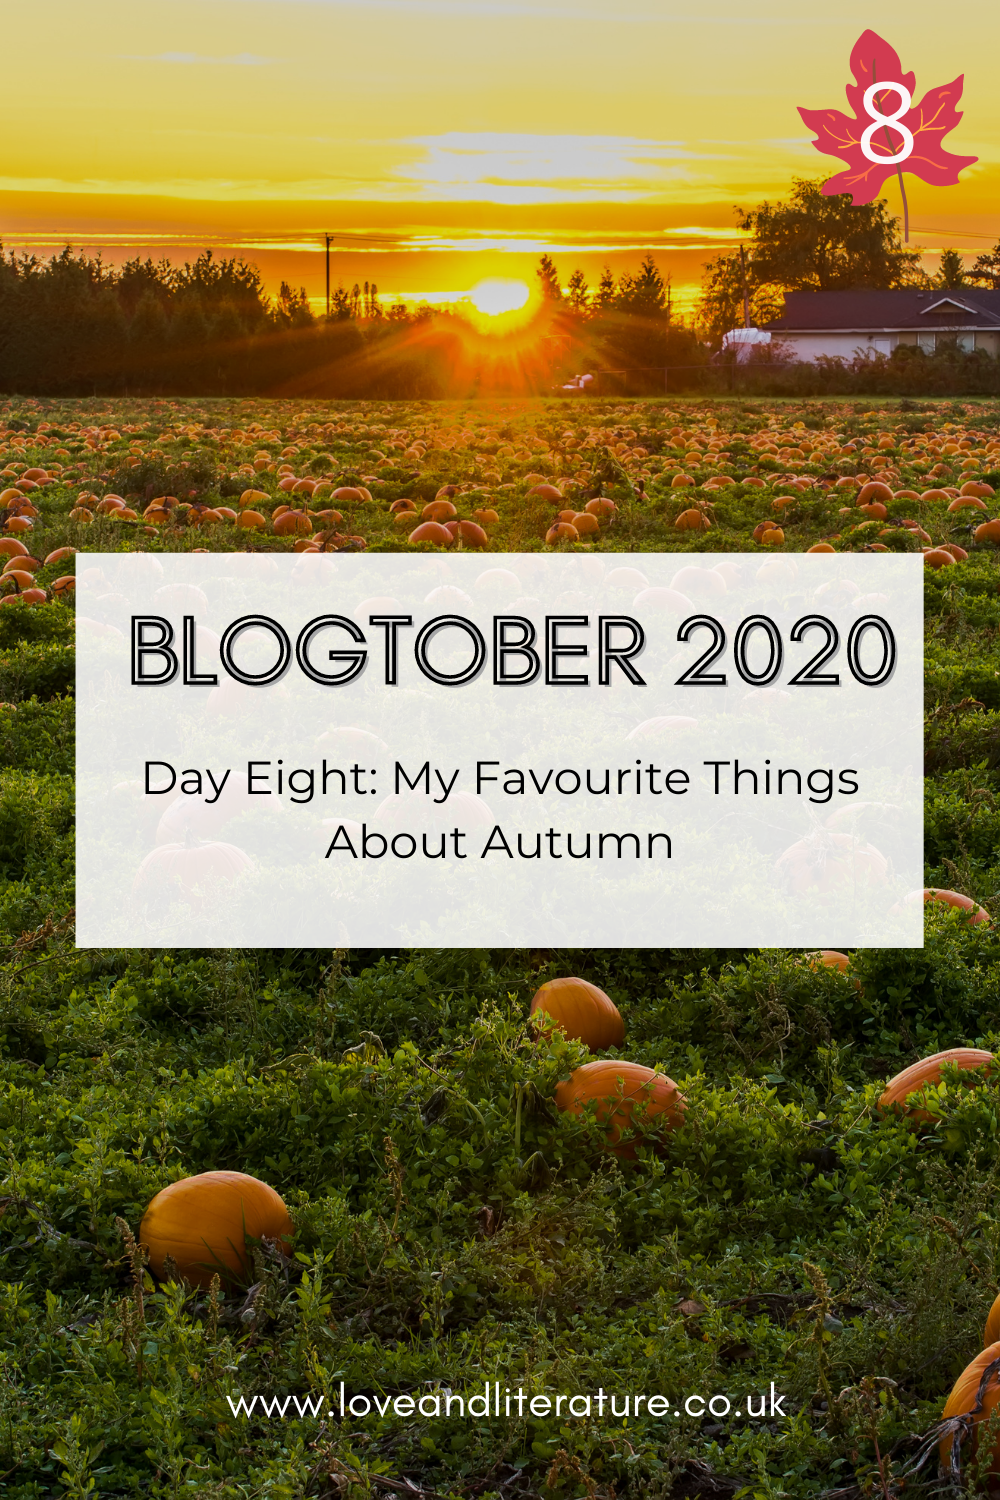 My Favourite Things About Autumn Pin. Pumpkin patch picture with text at front.